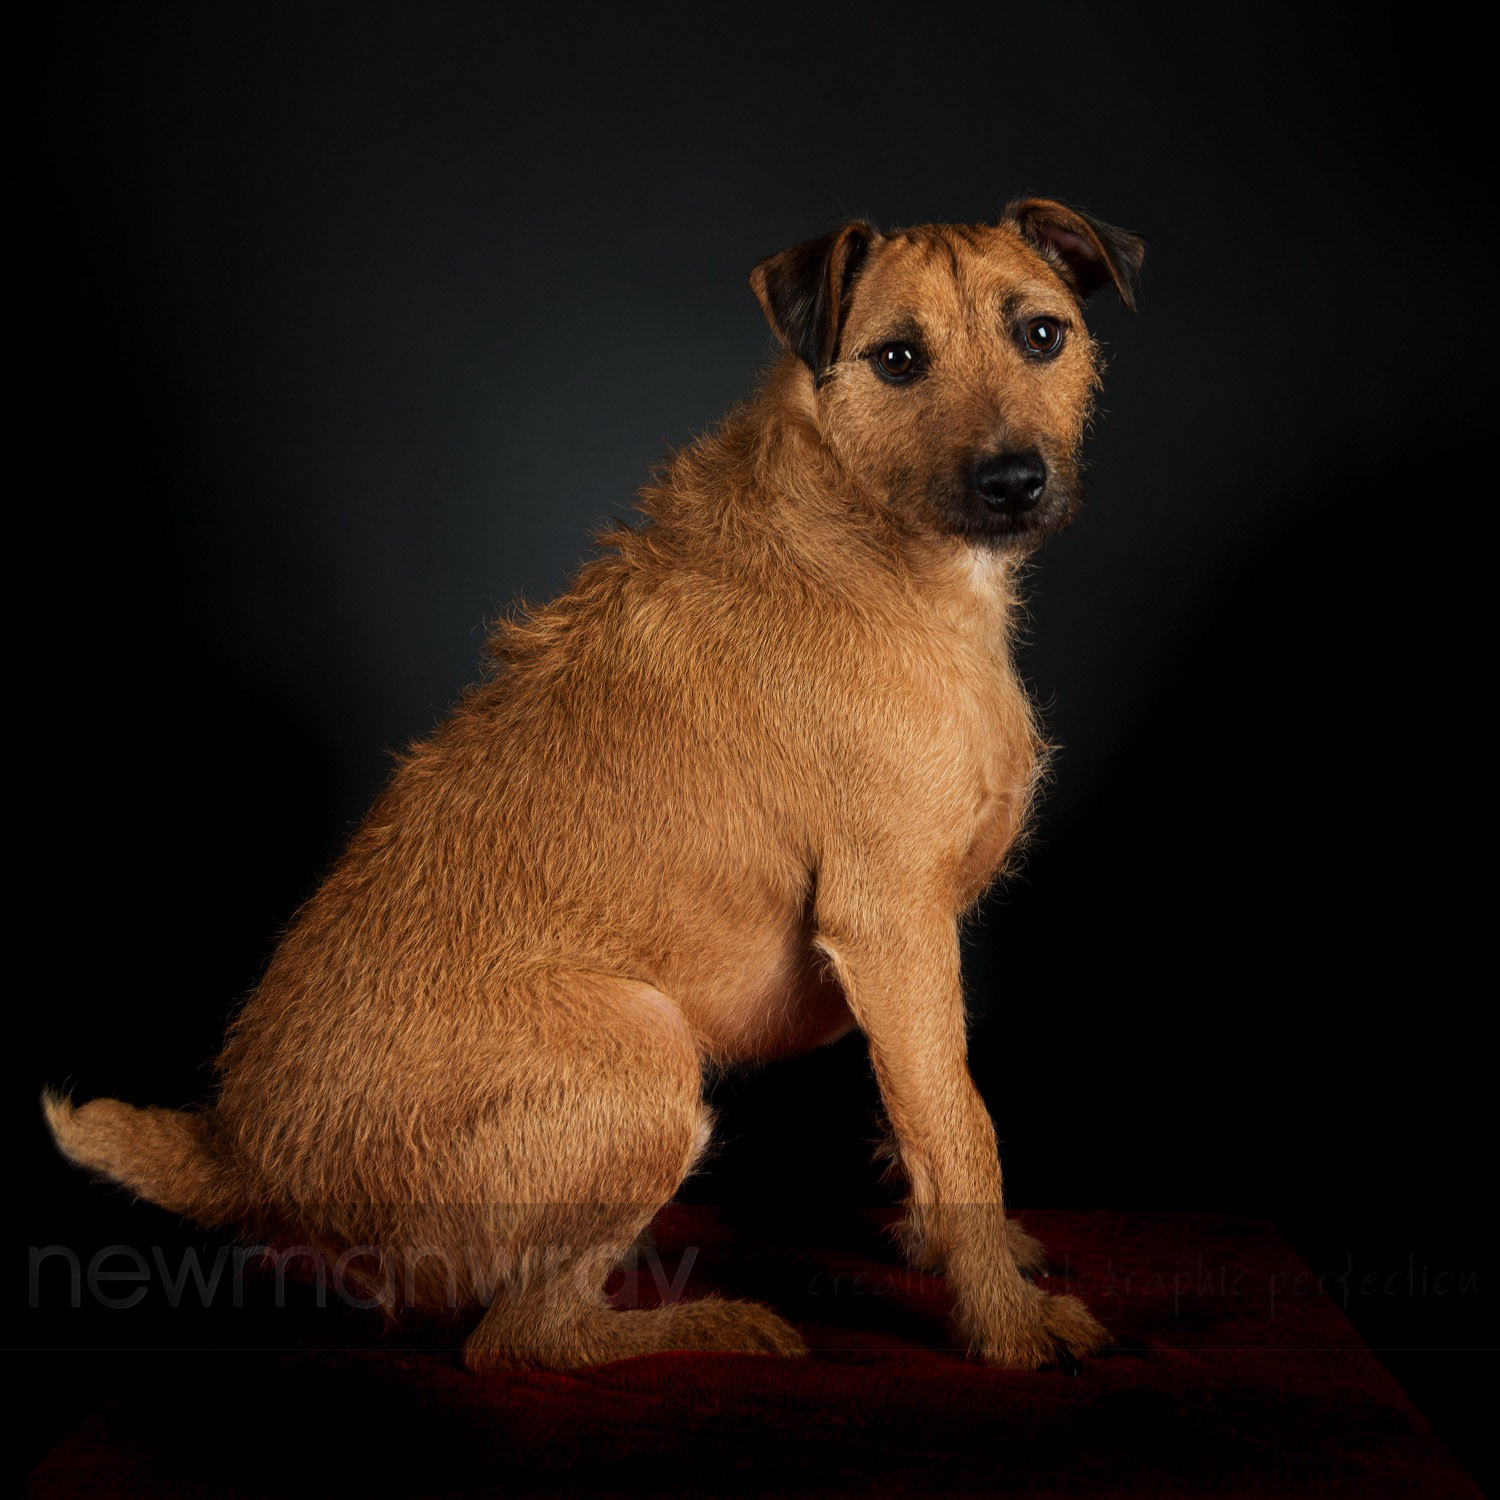 tadcaster_portrait_photography-68